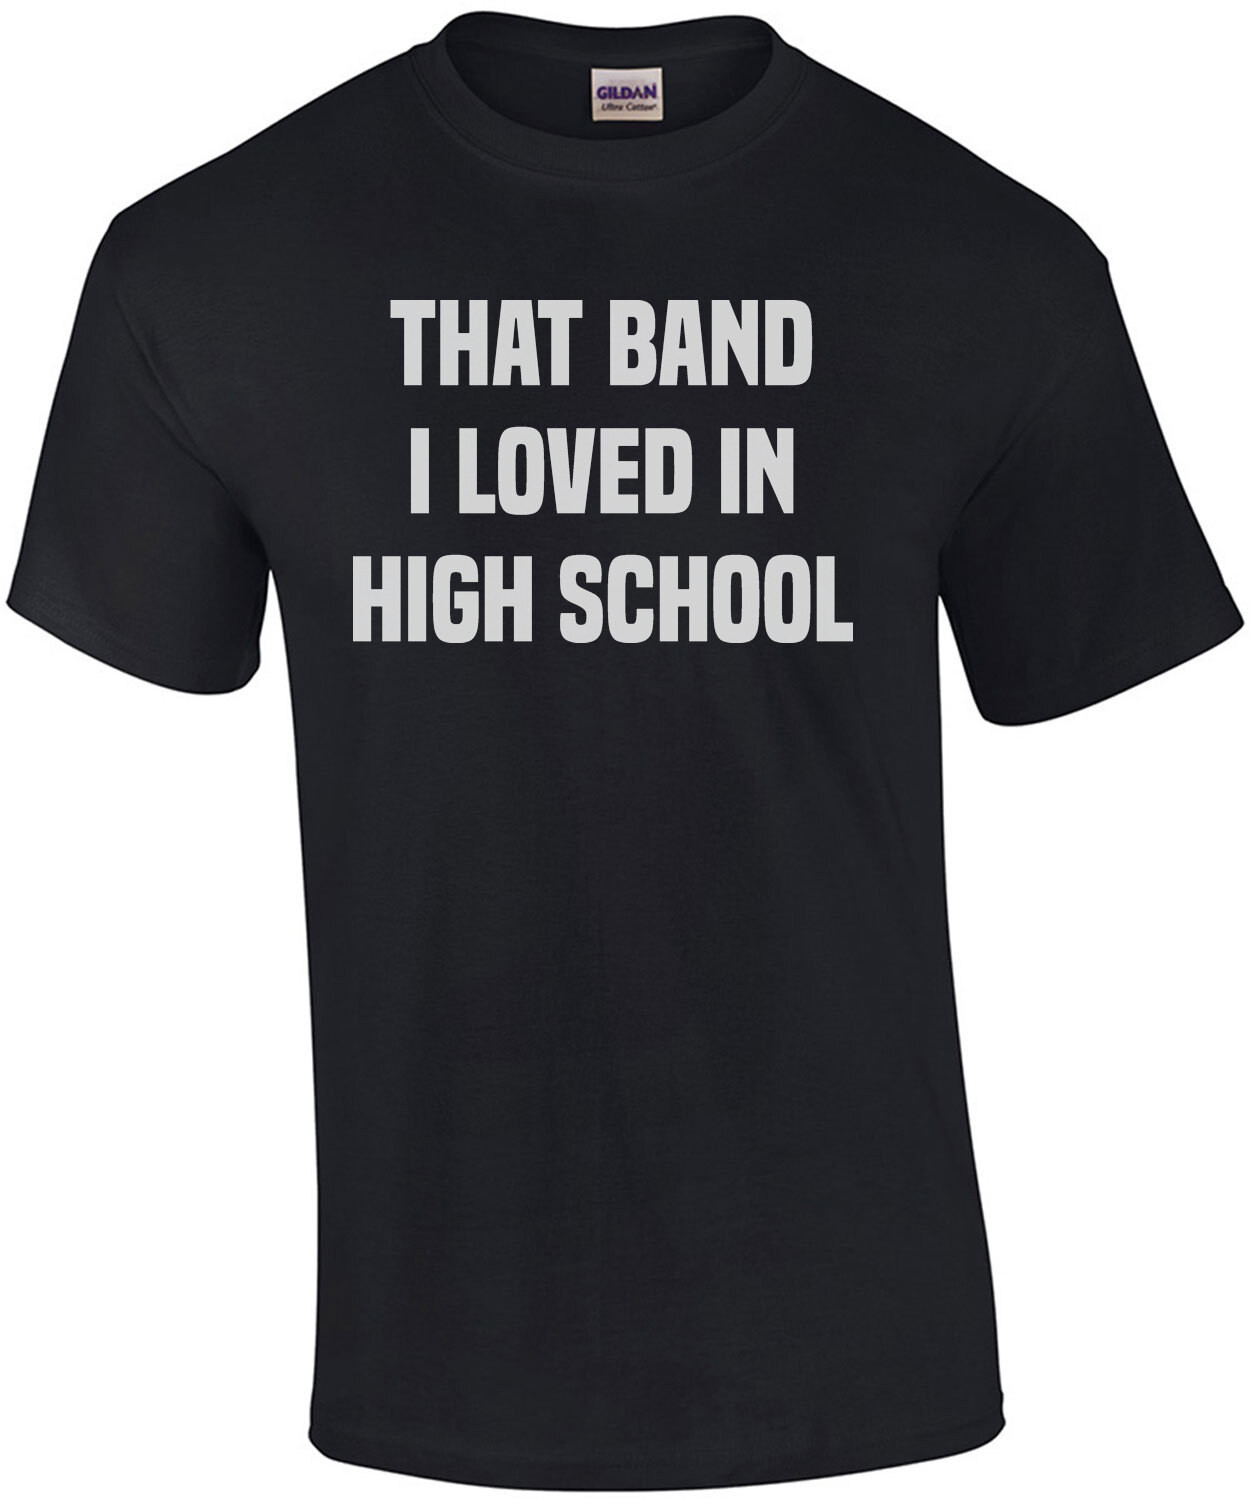 That band I loved in high school - funny t-shirt